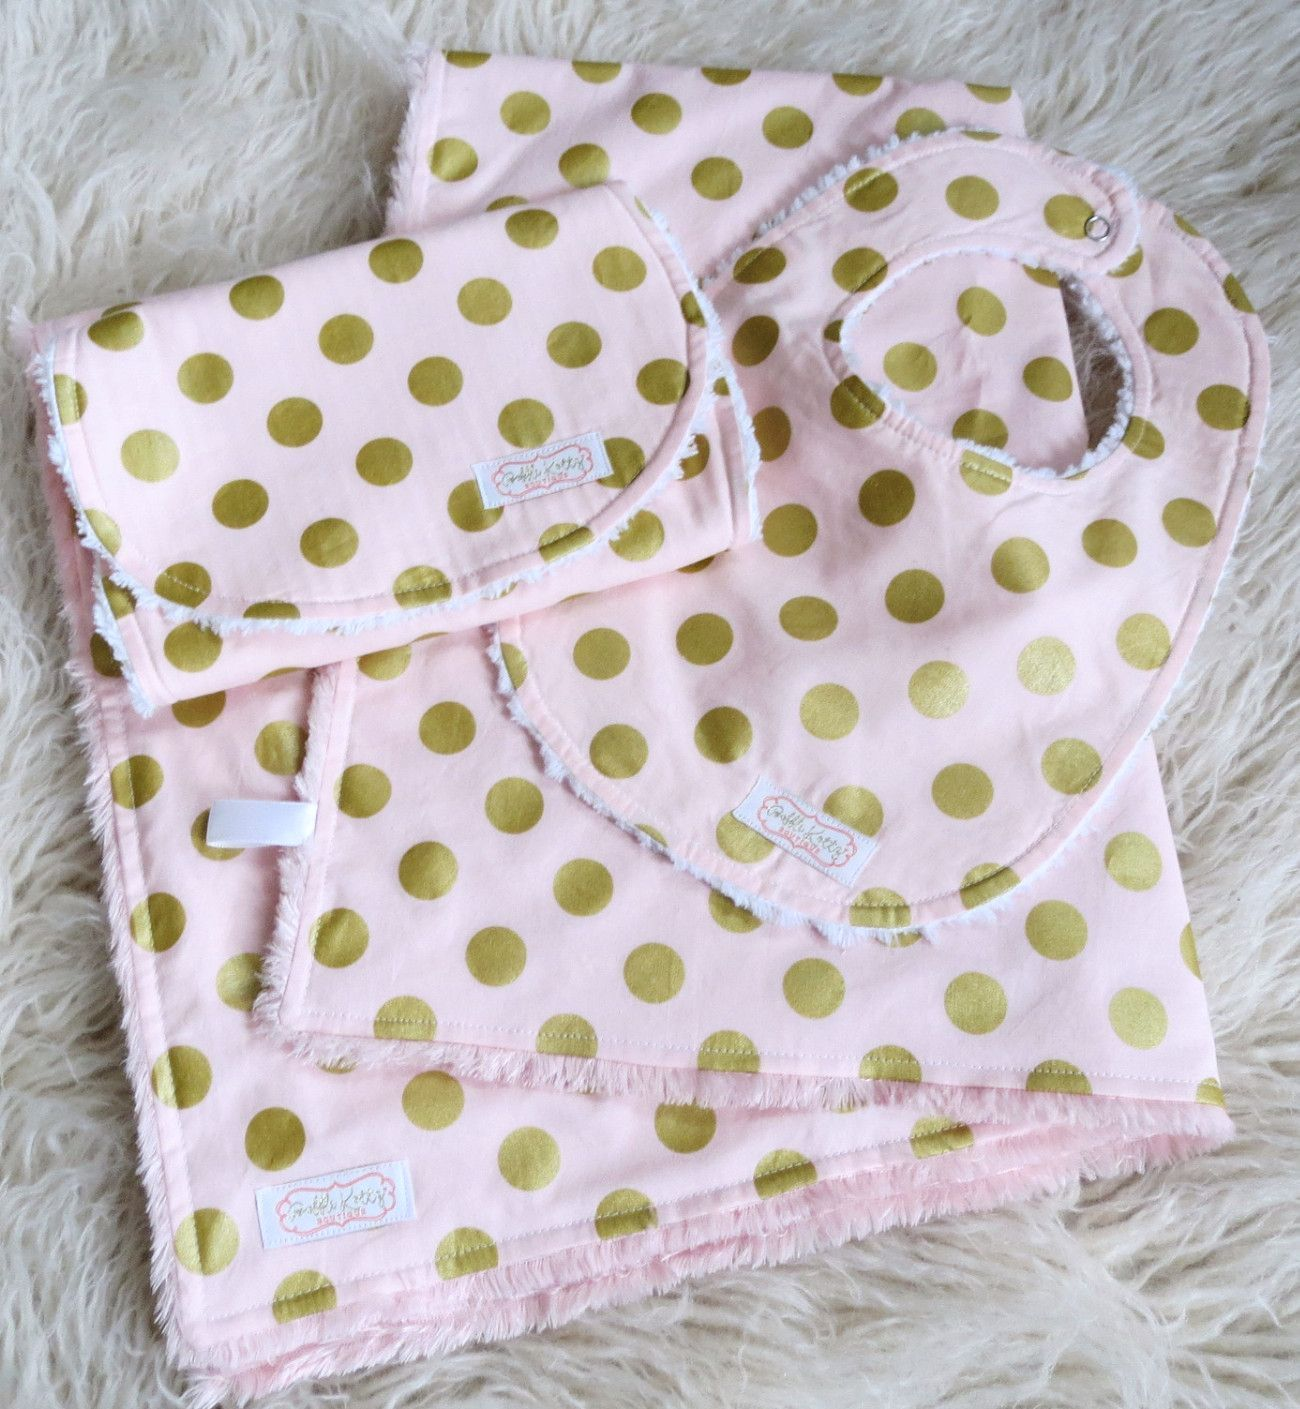 Baby Girl Is Sure To Snuggle With This Minky Shag Baby Blanket For Years To Come